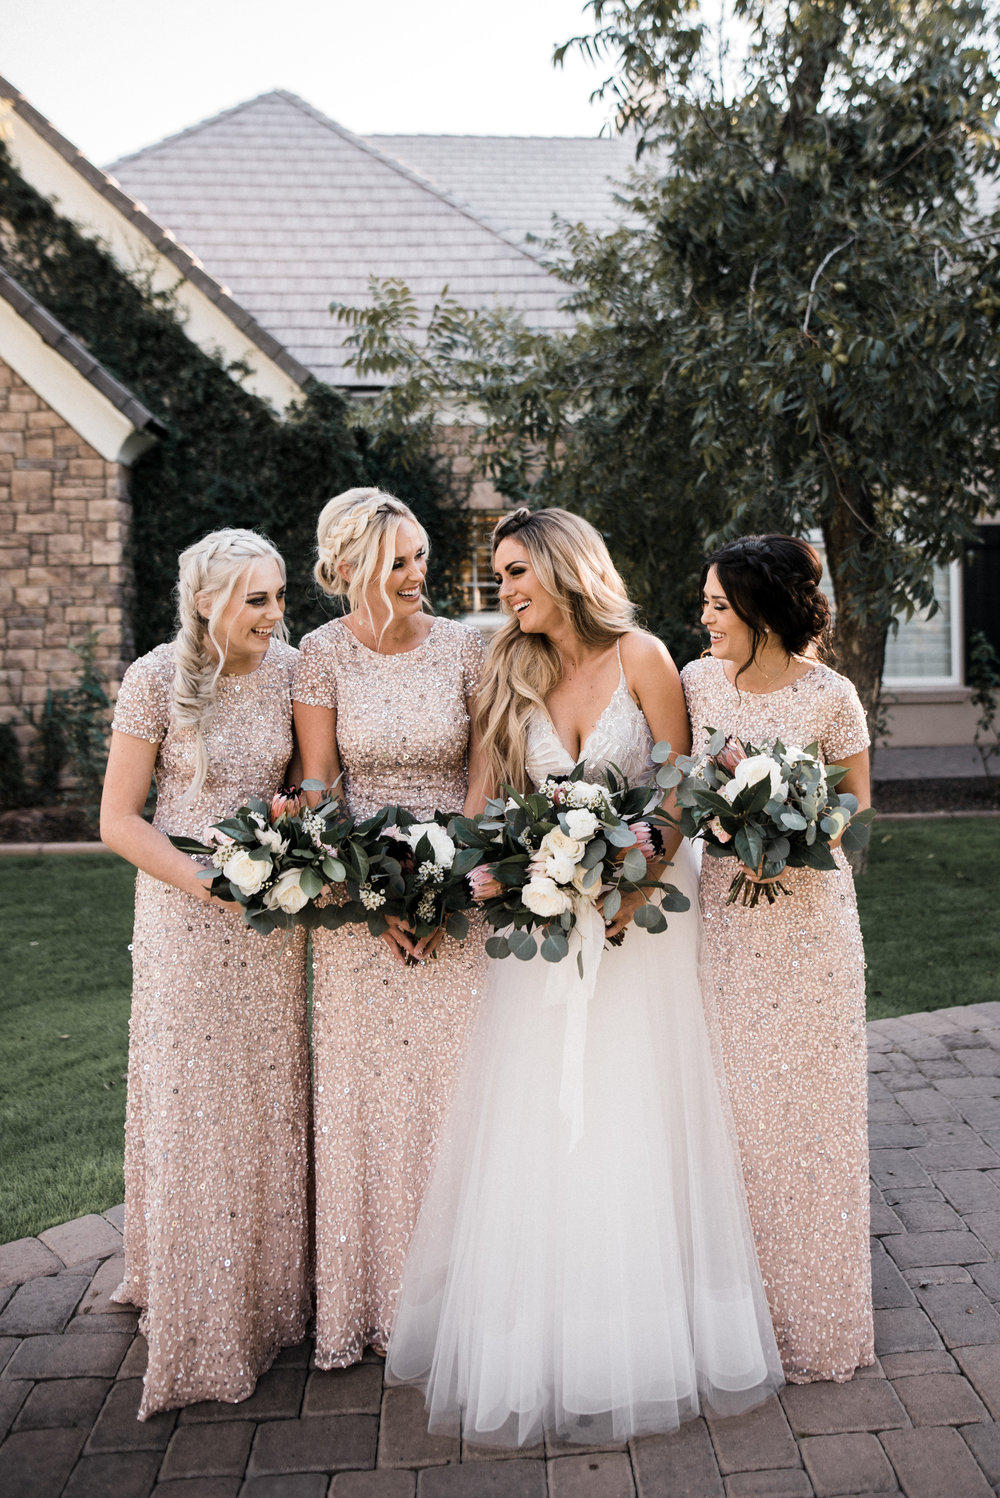 Moody, Romantic Arizona Wedding - Blush Beaded Bridesmaid Dresses